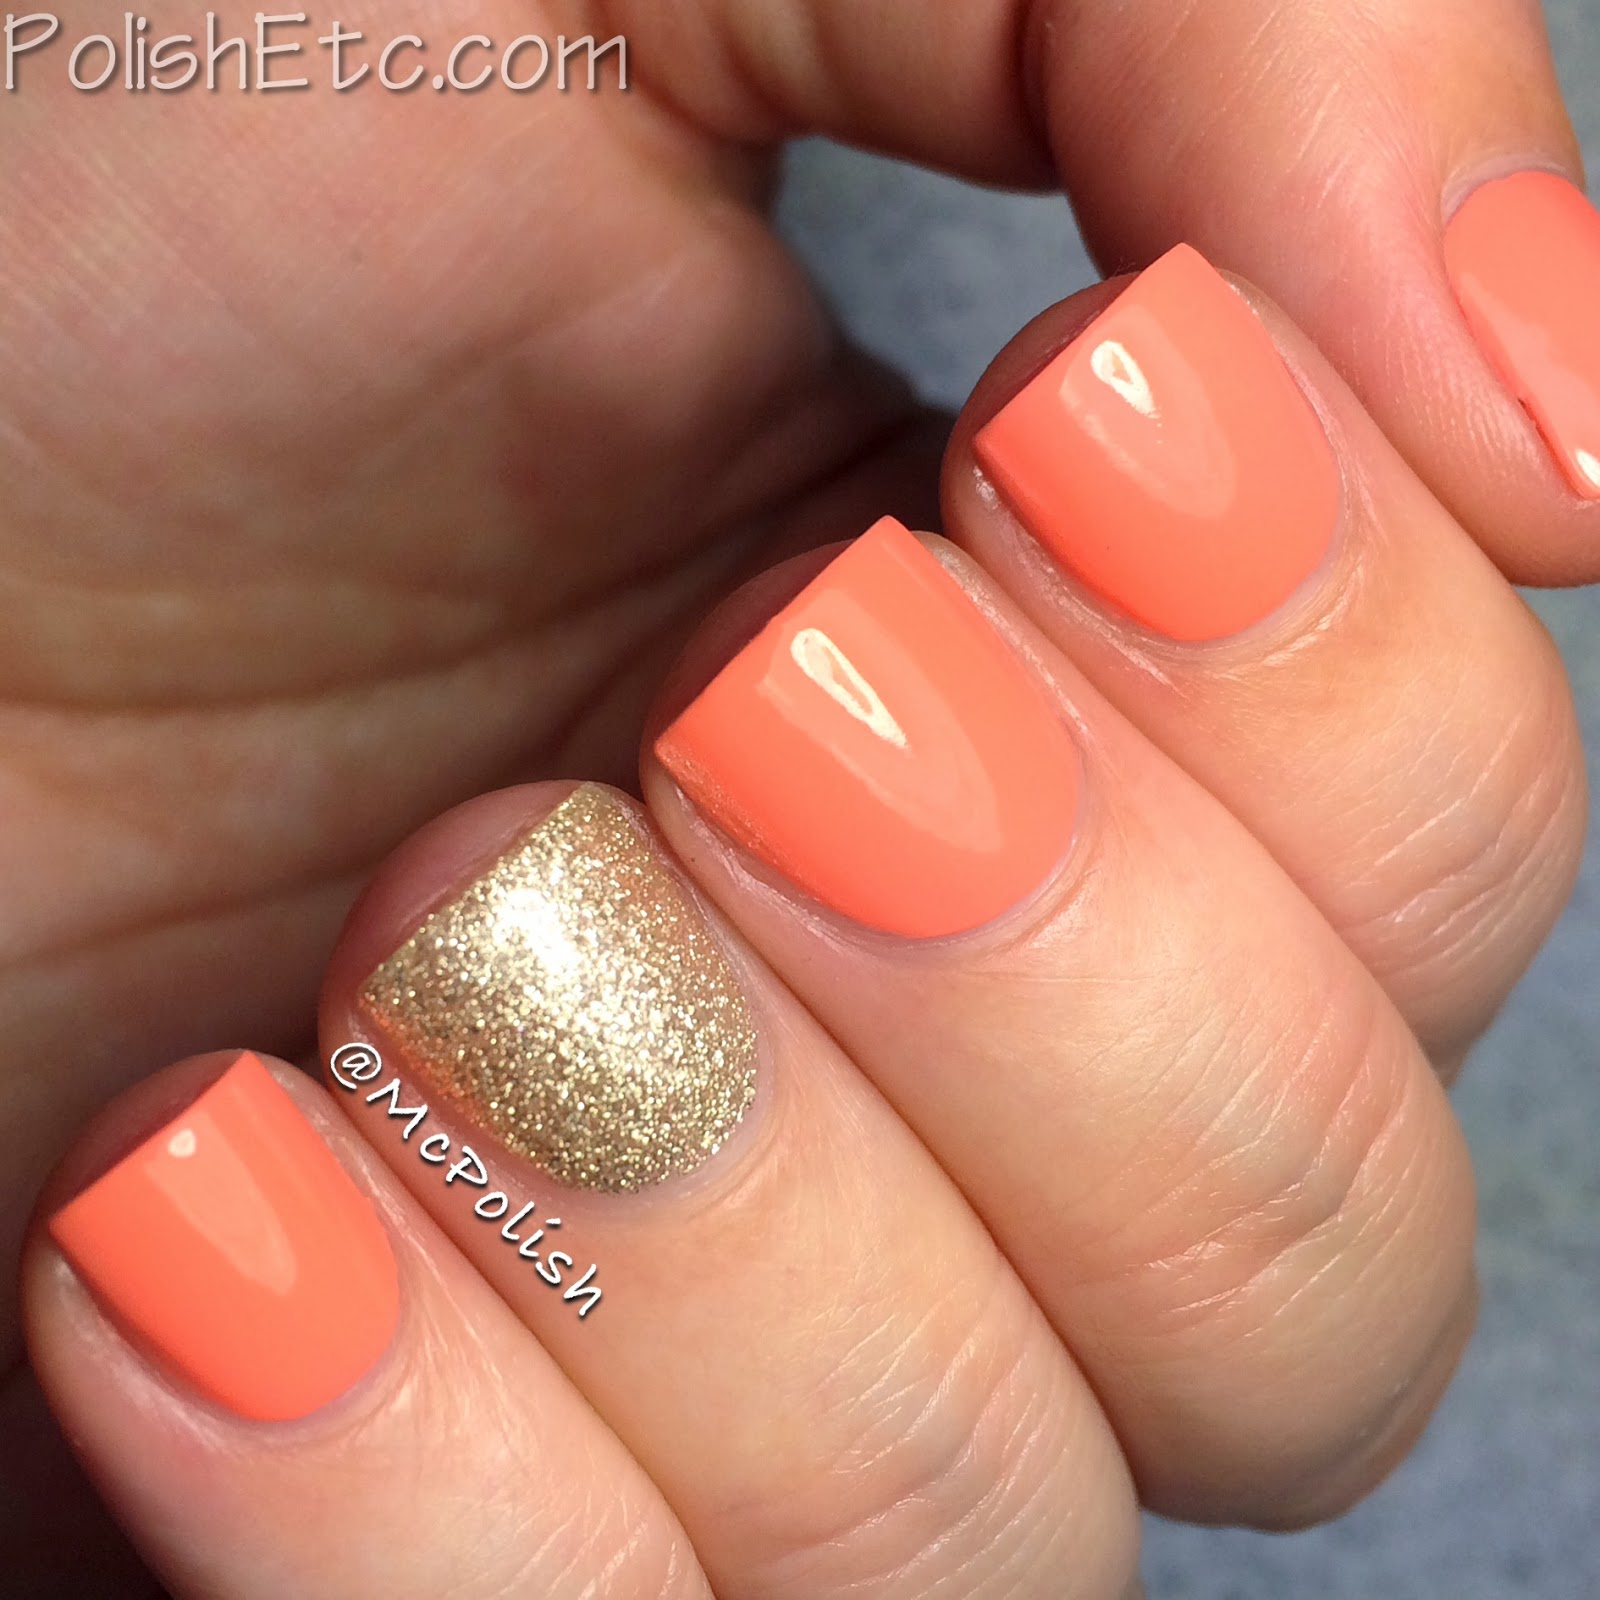 Revlon Parfumerie scented nail polish in Apricot Nectar